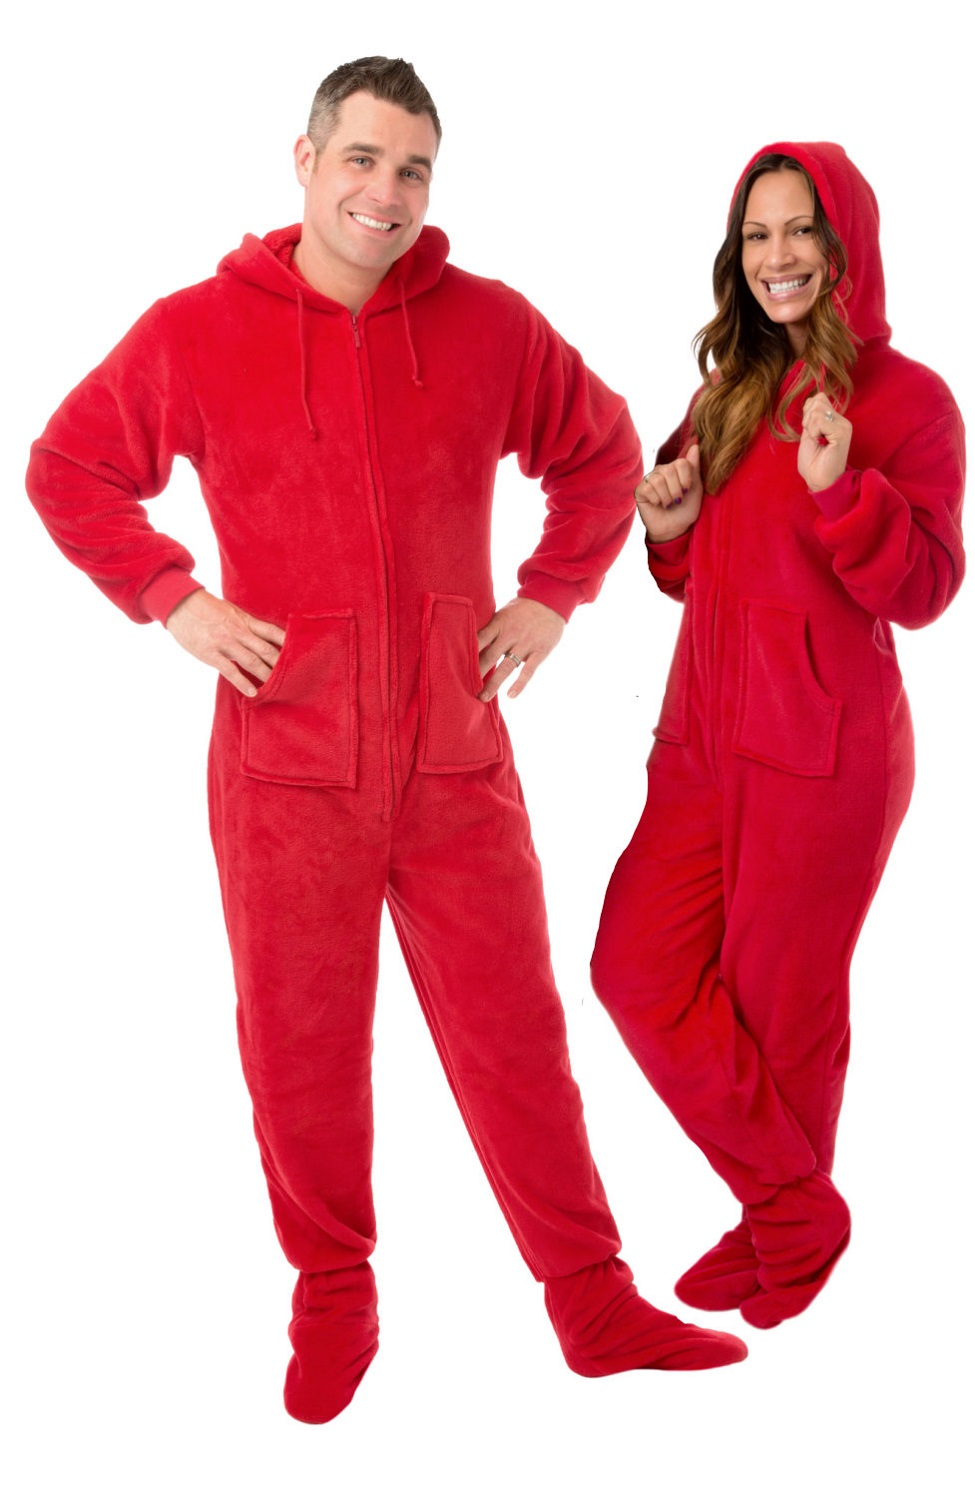 Fleece Onesie Footed Pajamas for Men   Women  Big Feet Onesie Footed ... 54528f7a5